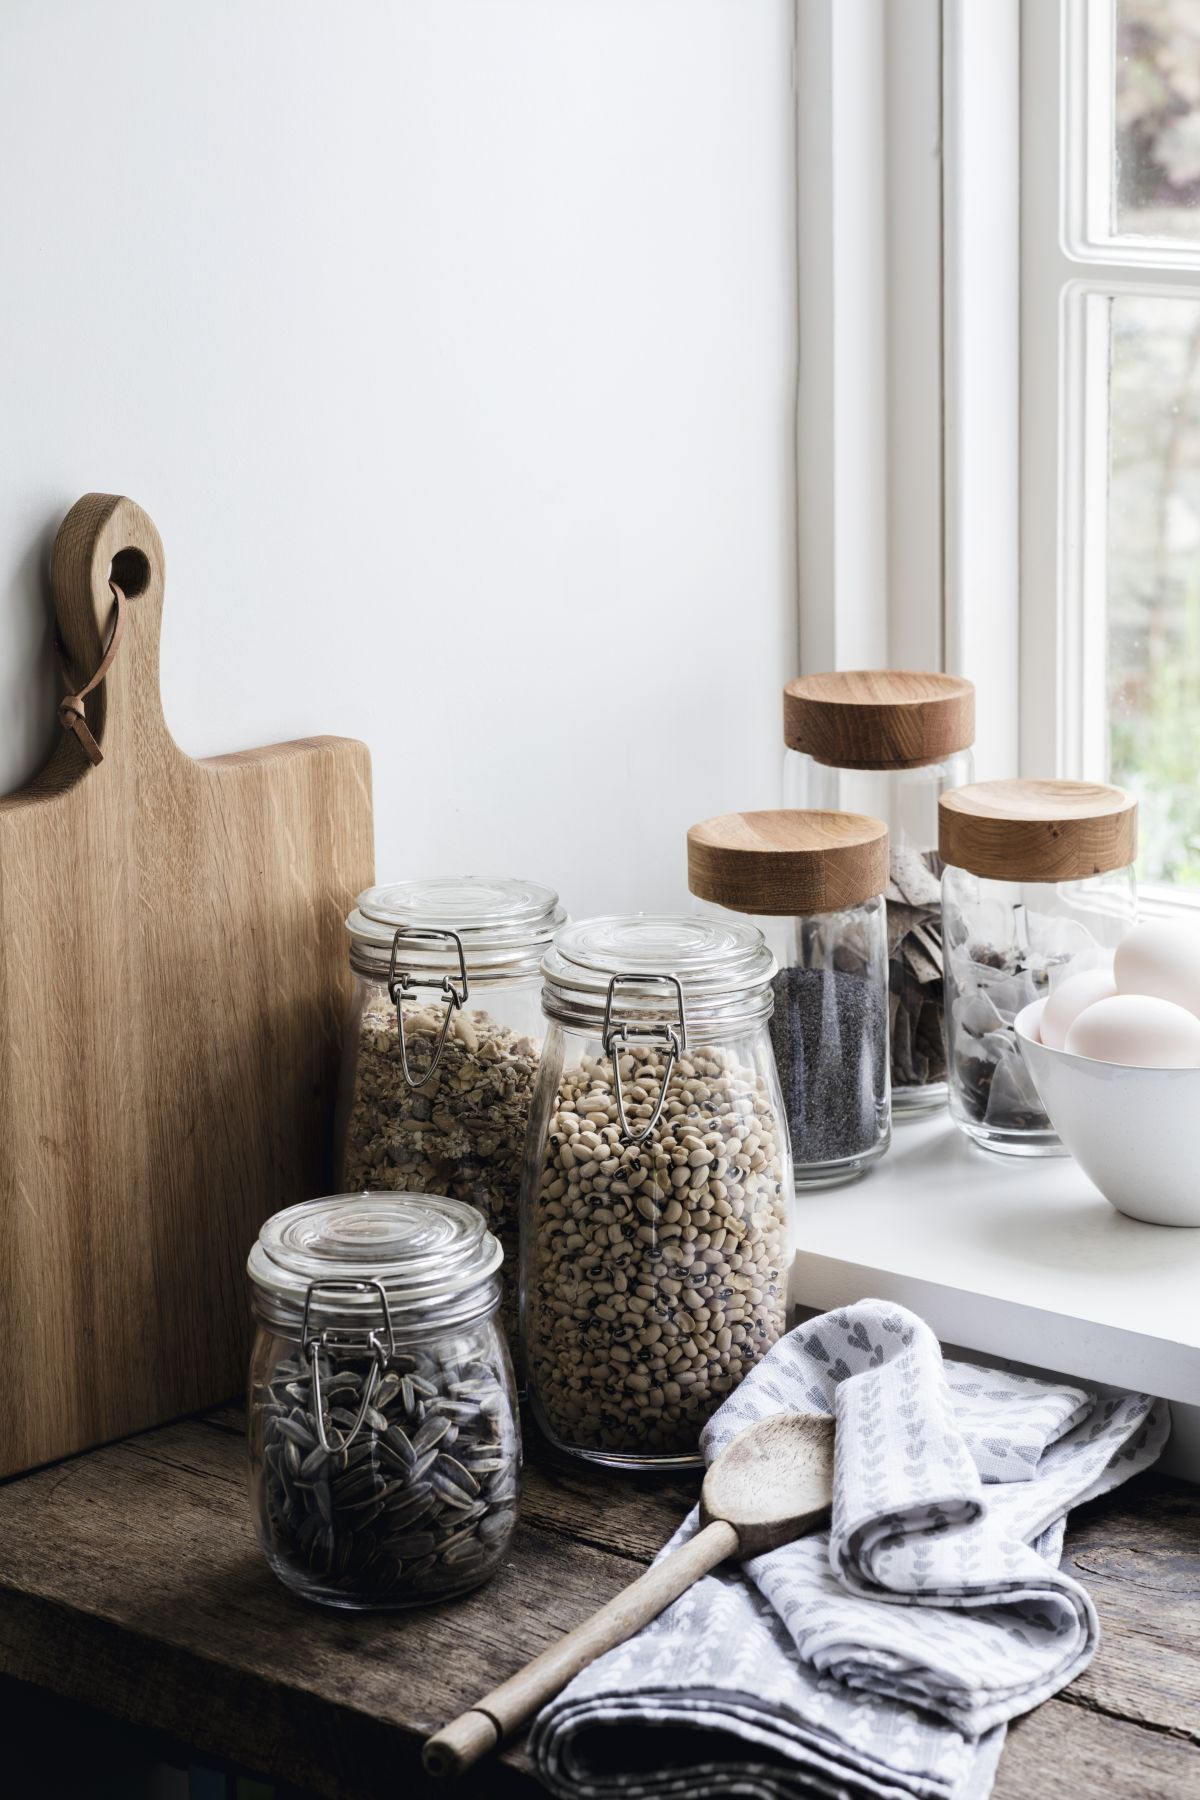 Got some old jars hanging about? This is the perfect use for them